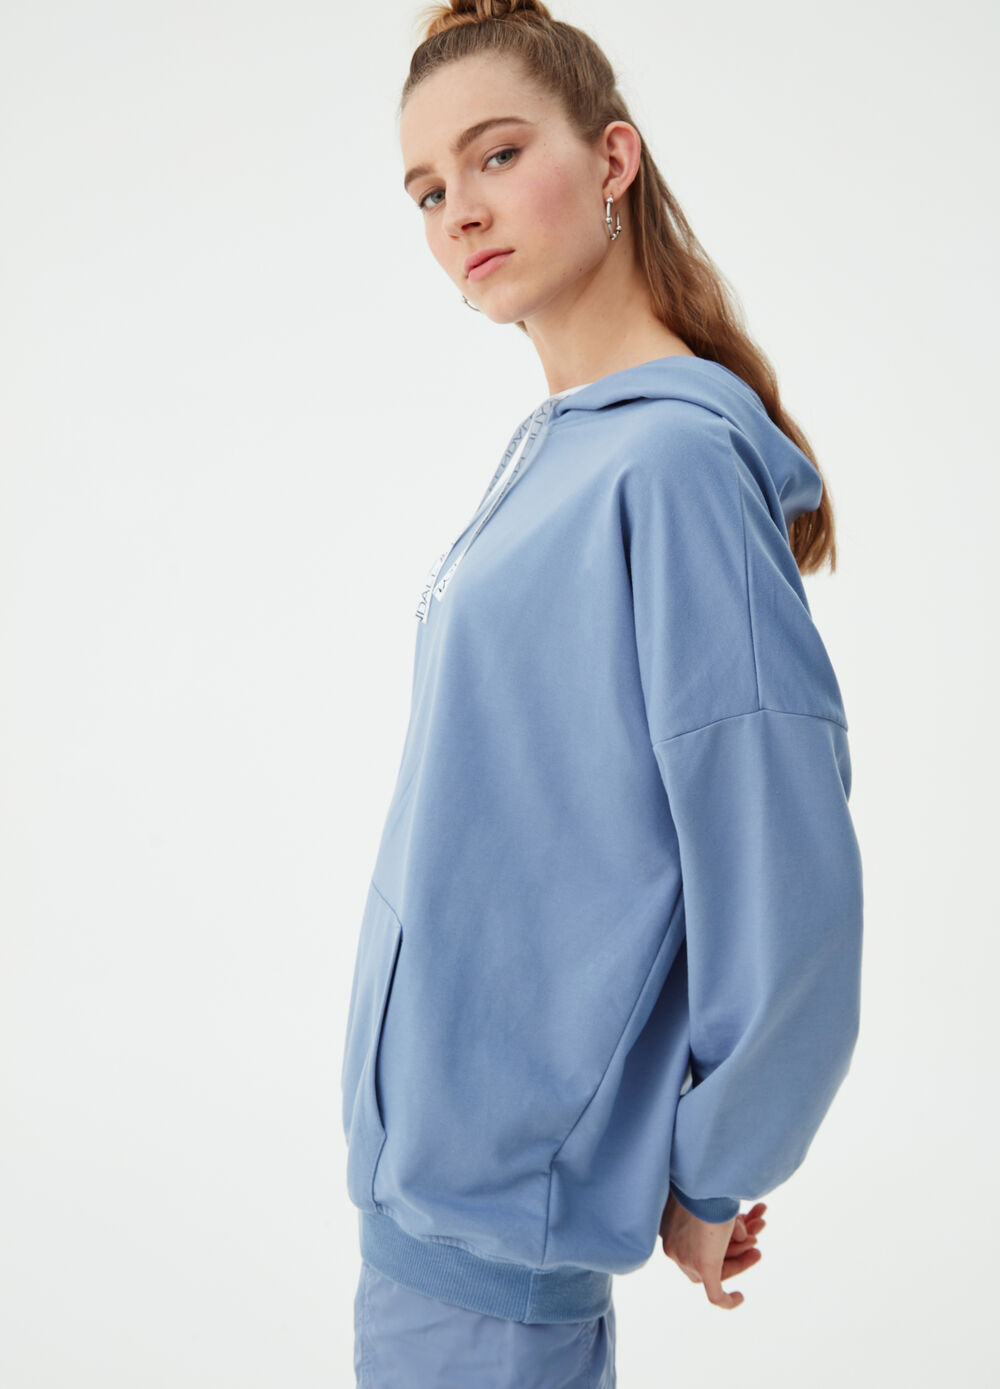 K+K for OVS oversized sweatshirt with drawstring